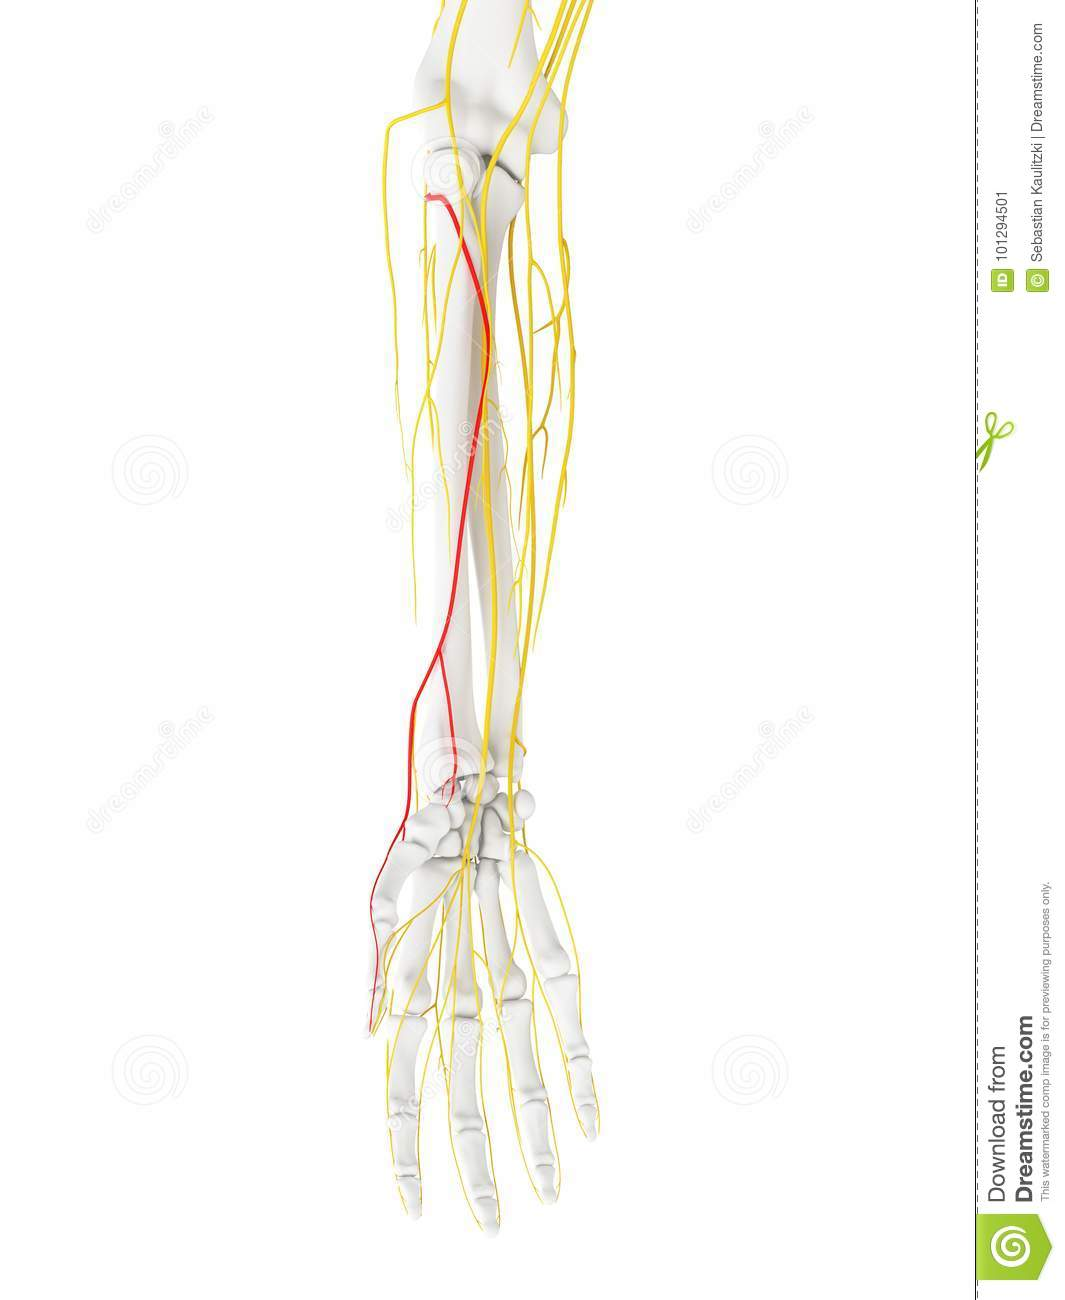 radial nerve diagram 1974 bmw 2002 wiring the superficial branch stock illustration 3d rendered medically accurate of